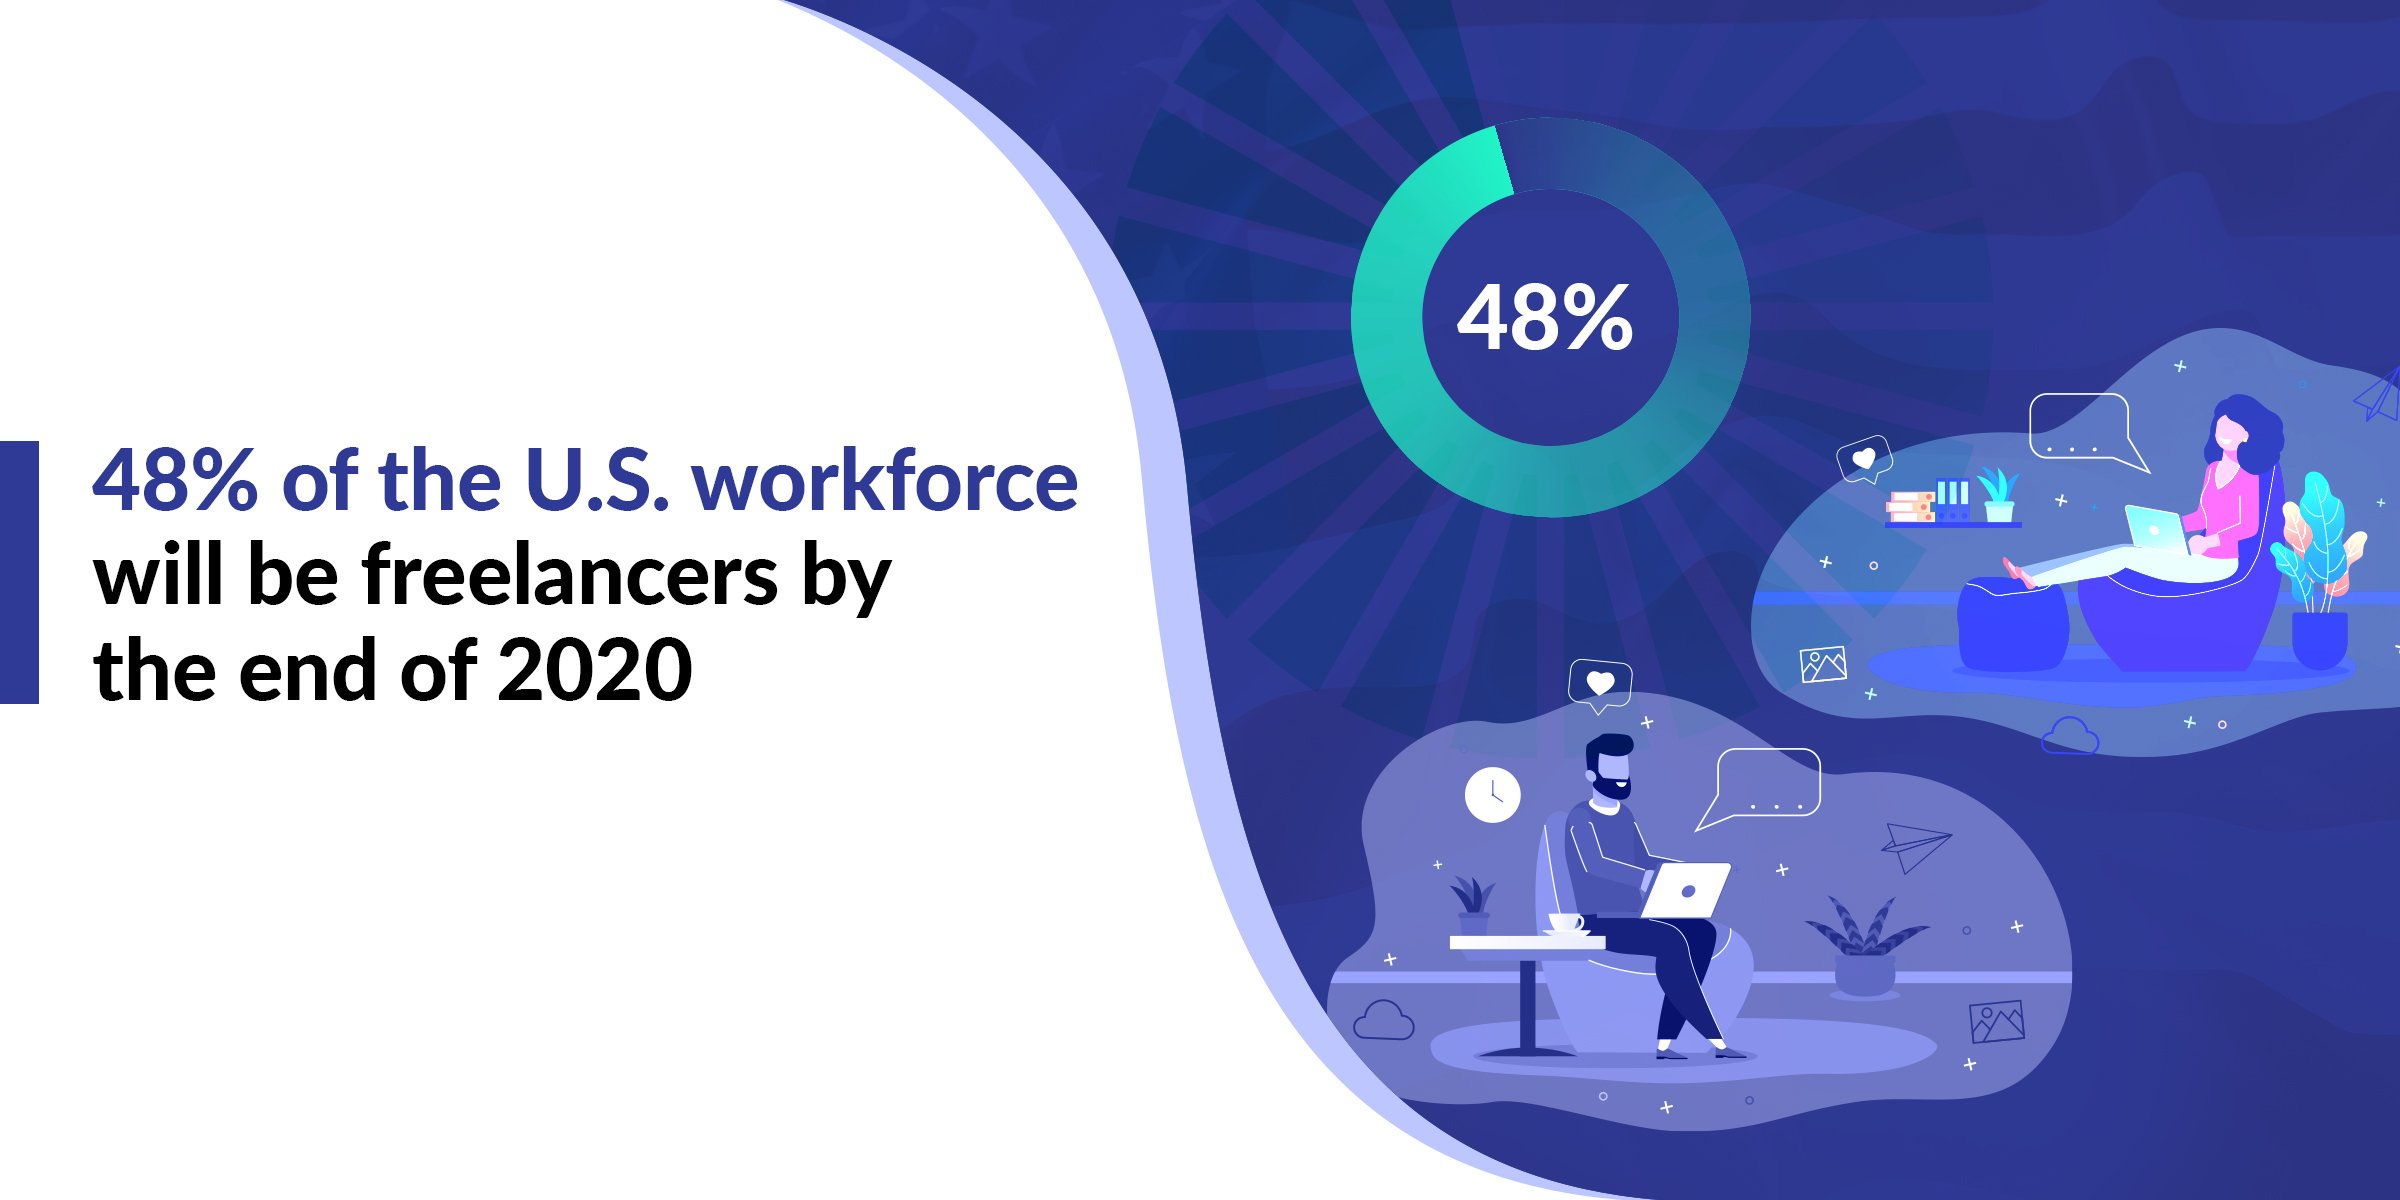 Freelance Statistics - 48% of U.S. Workforce will be freelancers by end of 2020